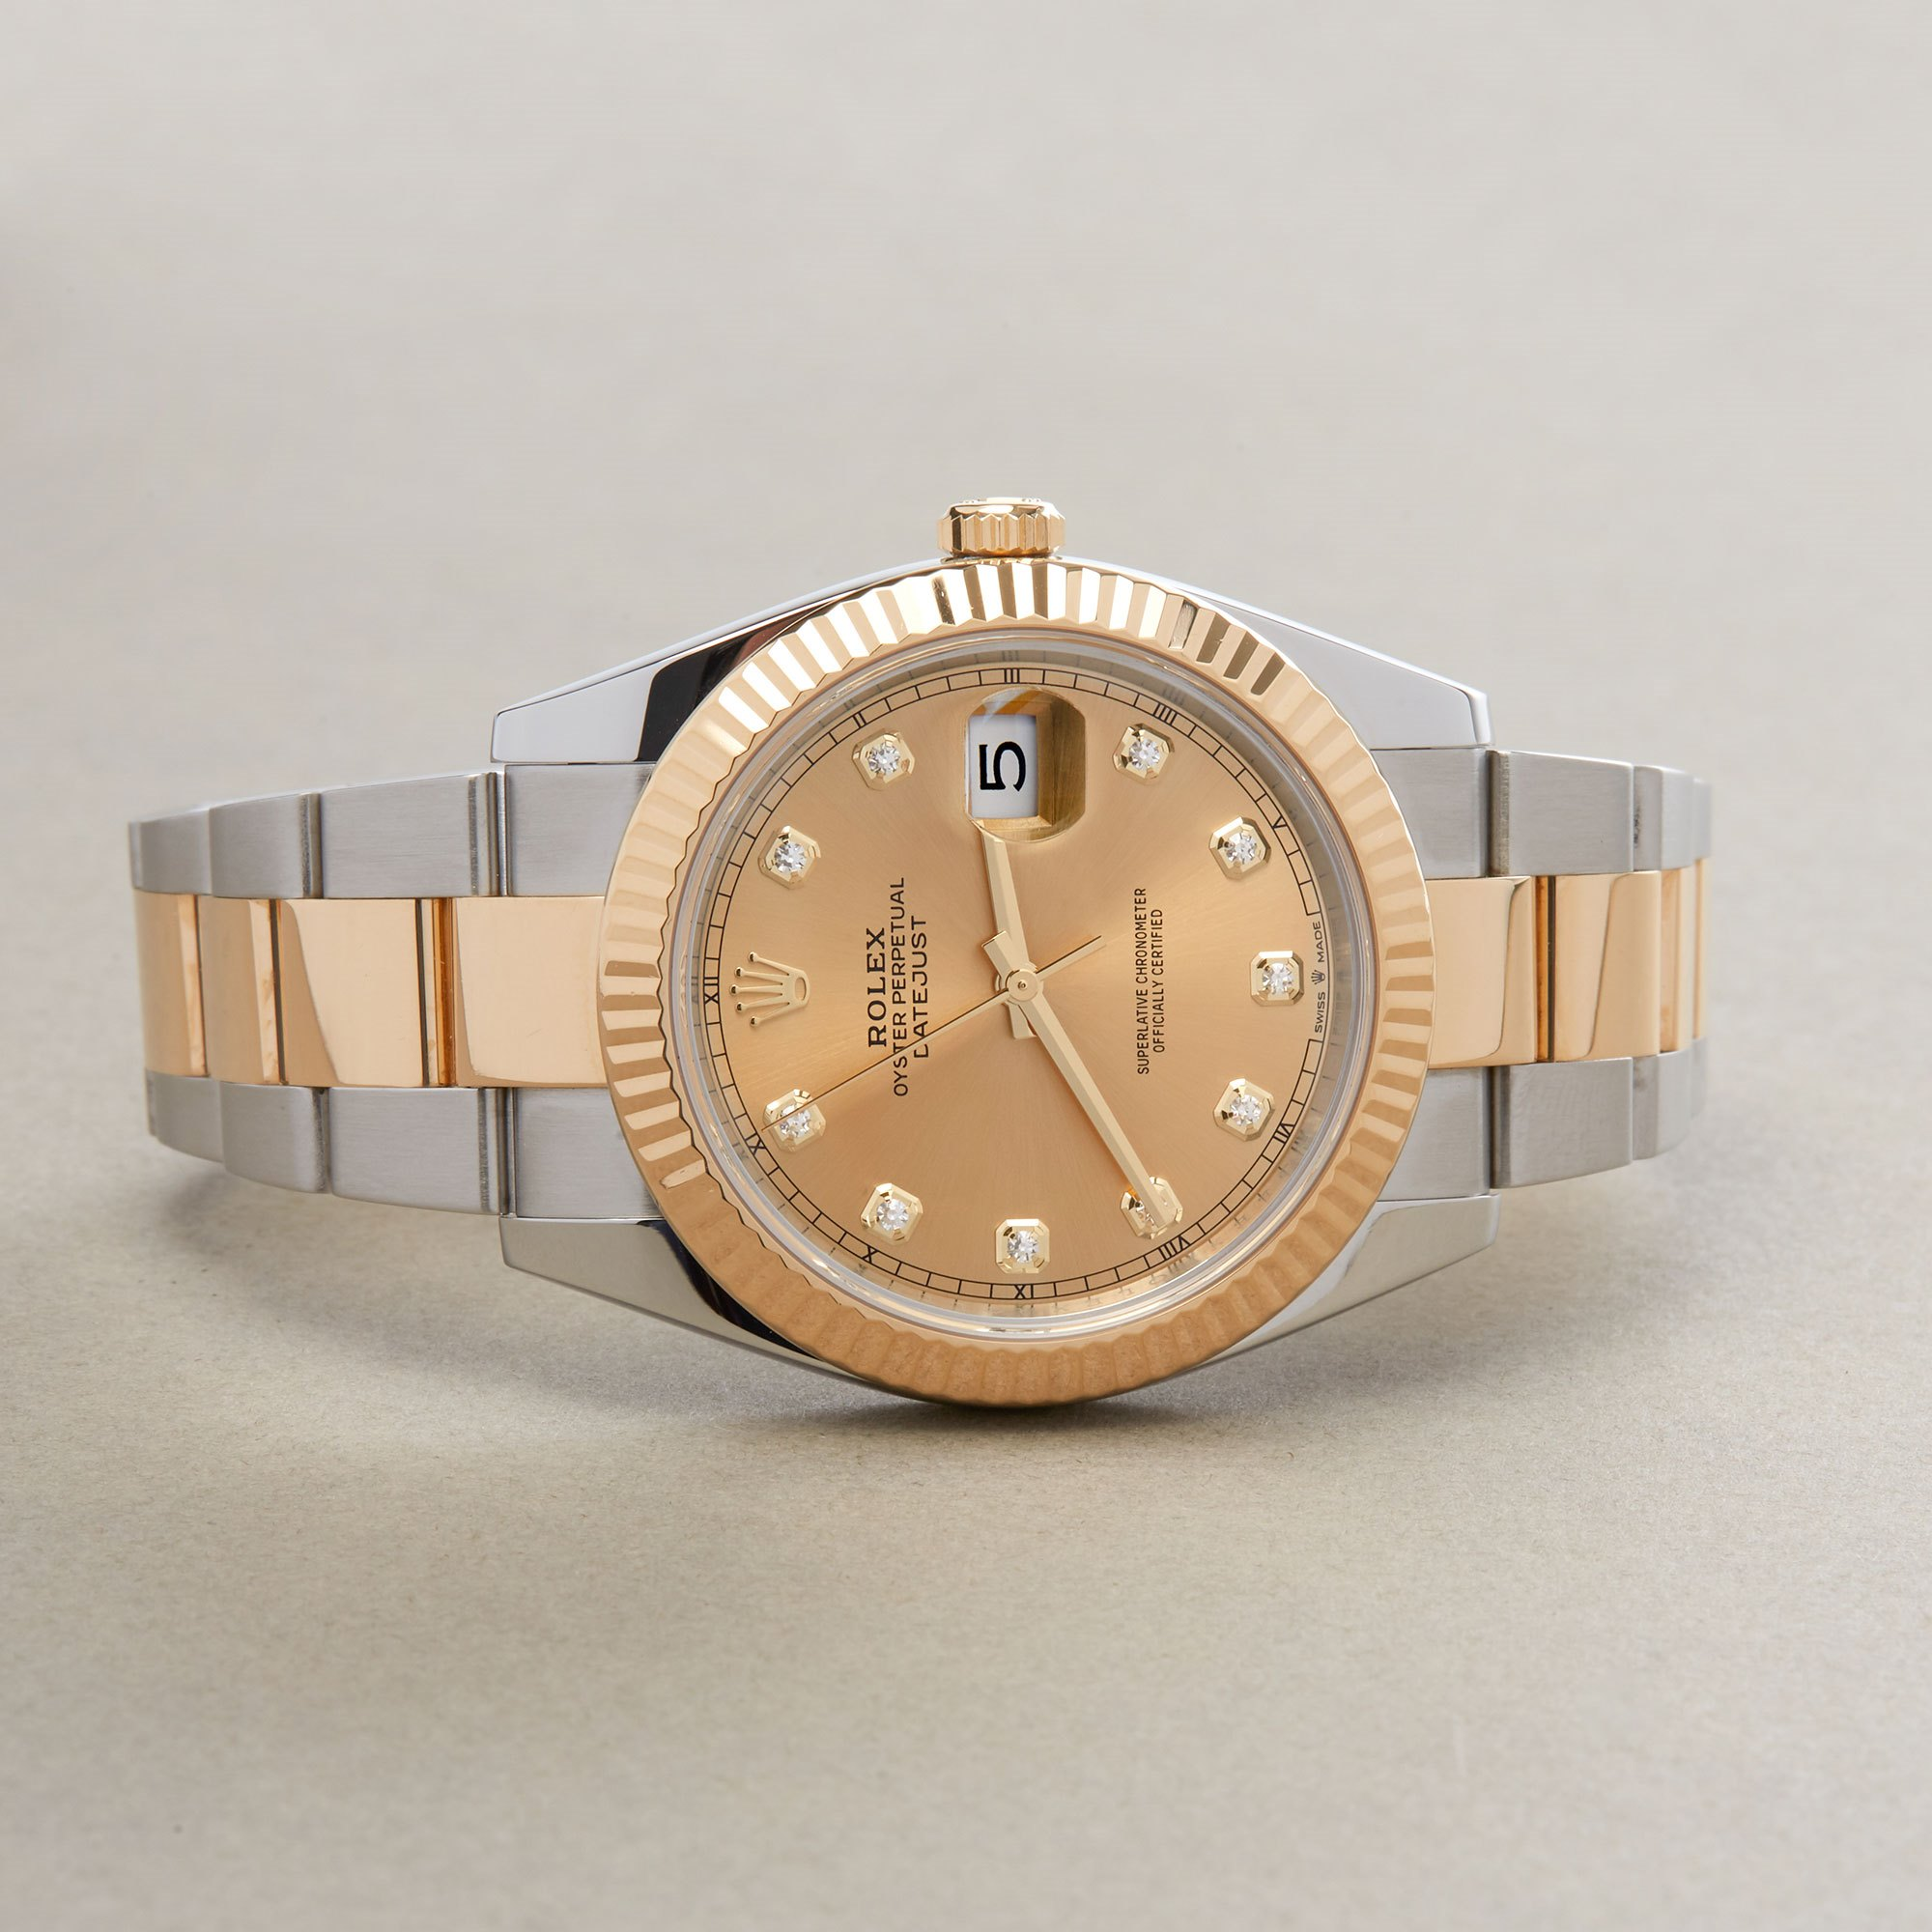 Rolex Datejust 41 126333 Men Yellow Gold & Stainless Steel Diamond Watch - Image 6 of 10